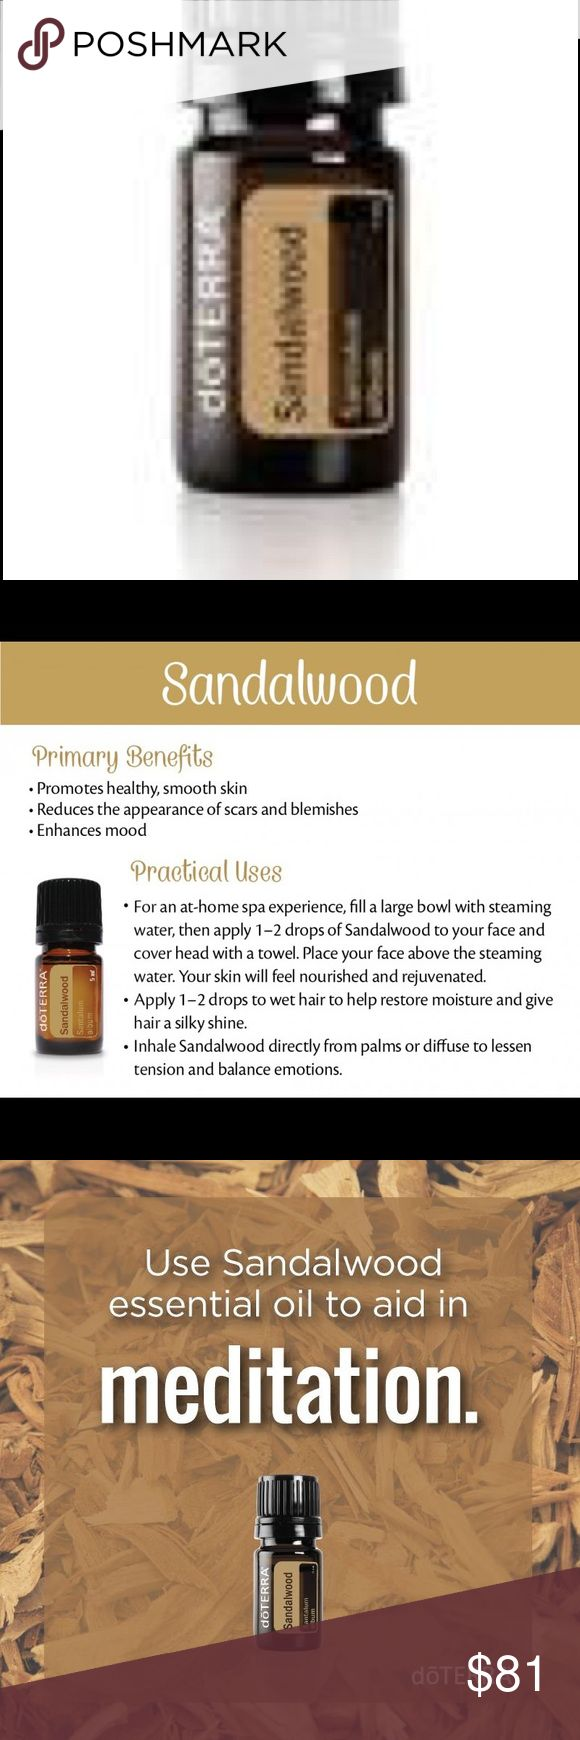 Doterra Sandalwood Images - Reverse Search